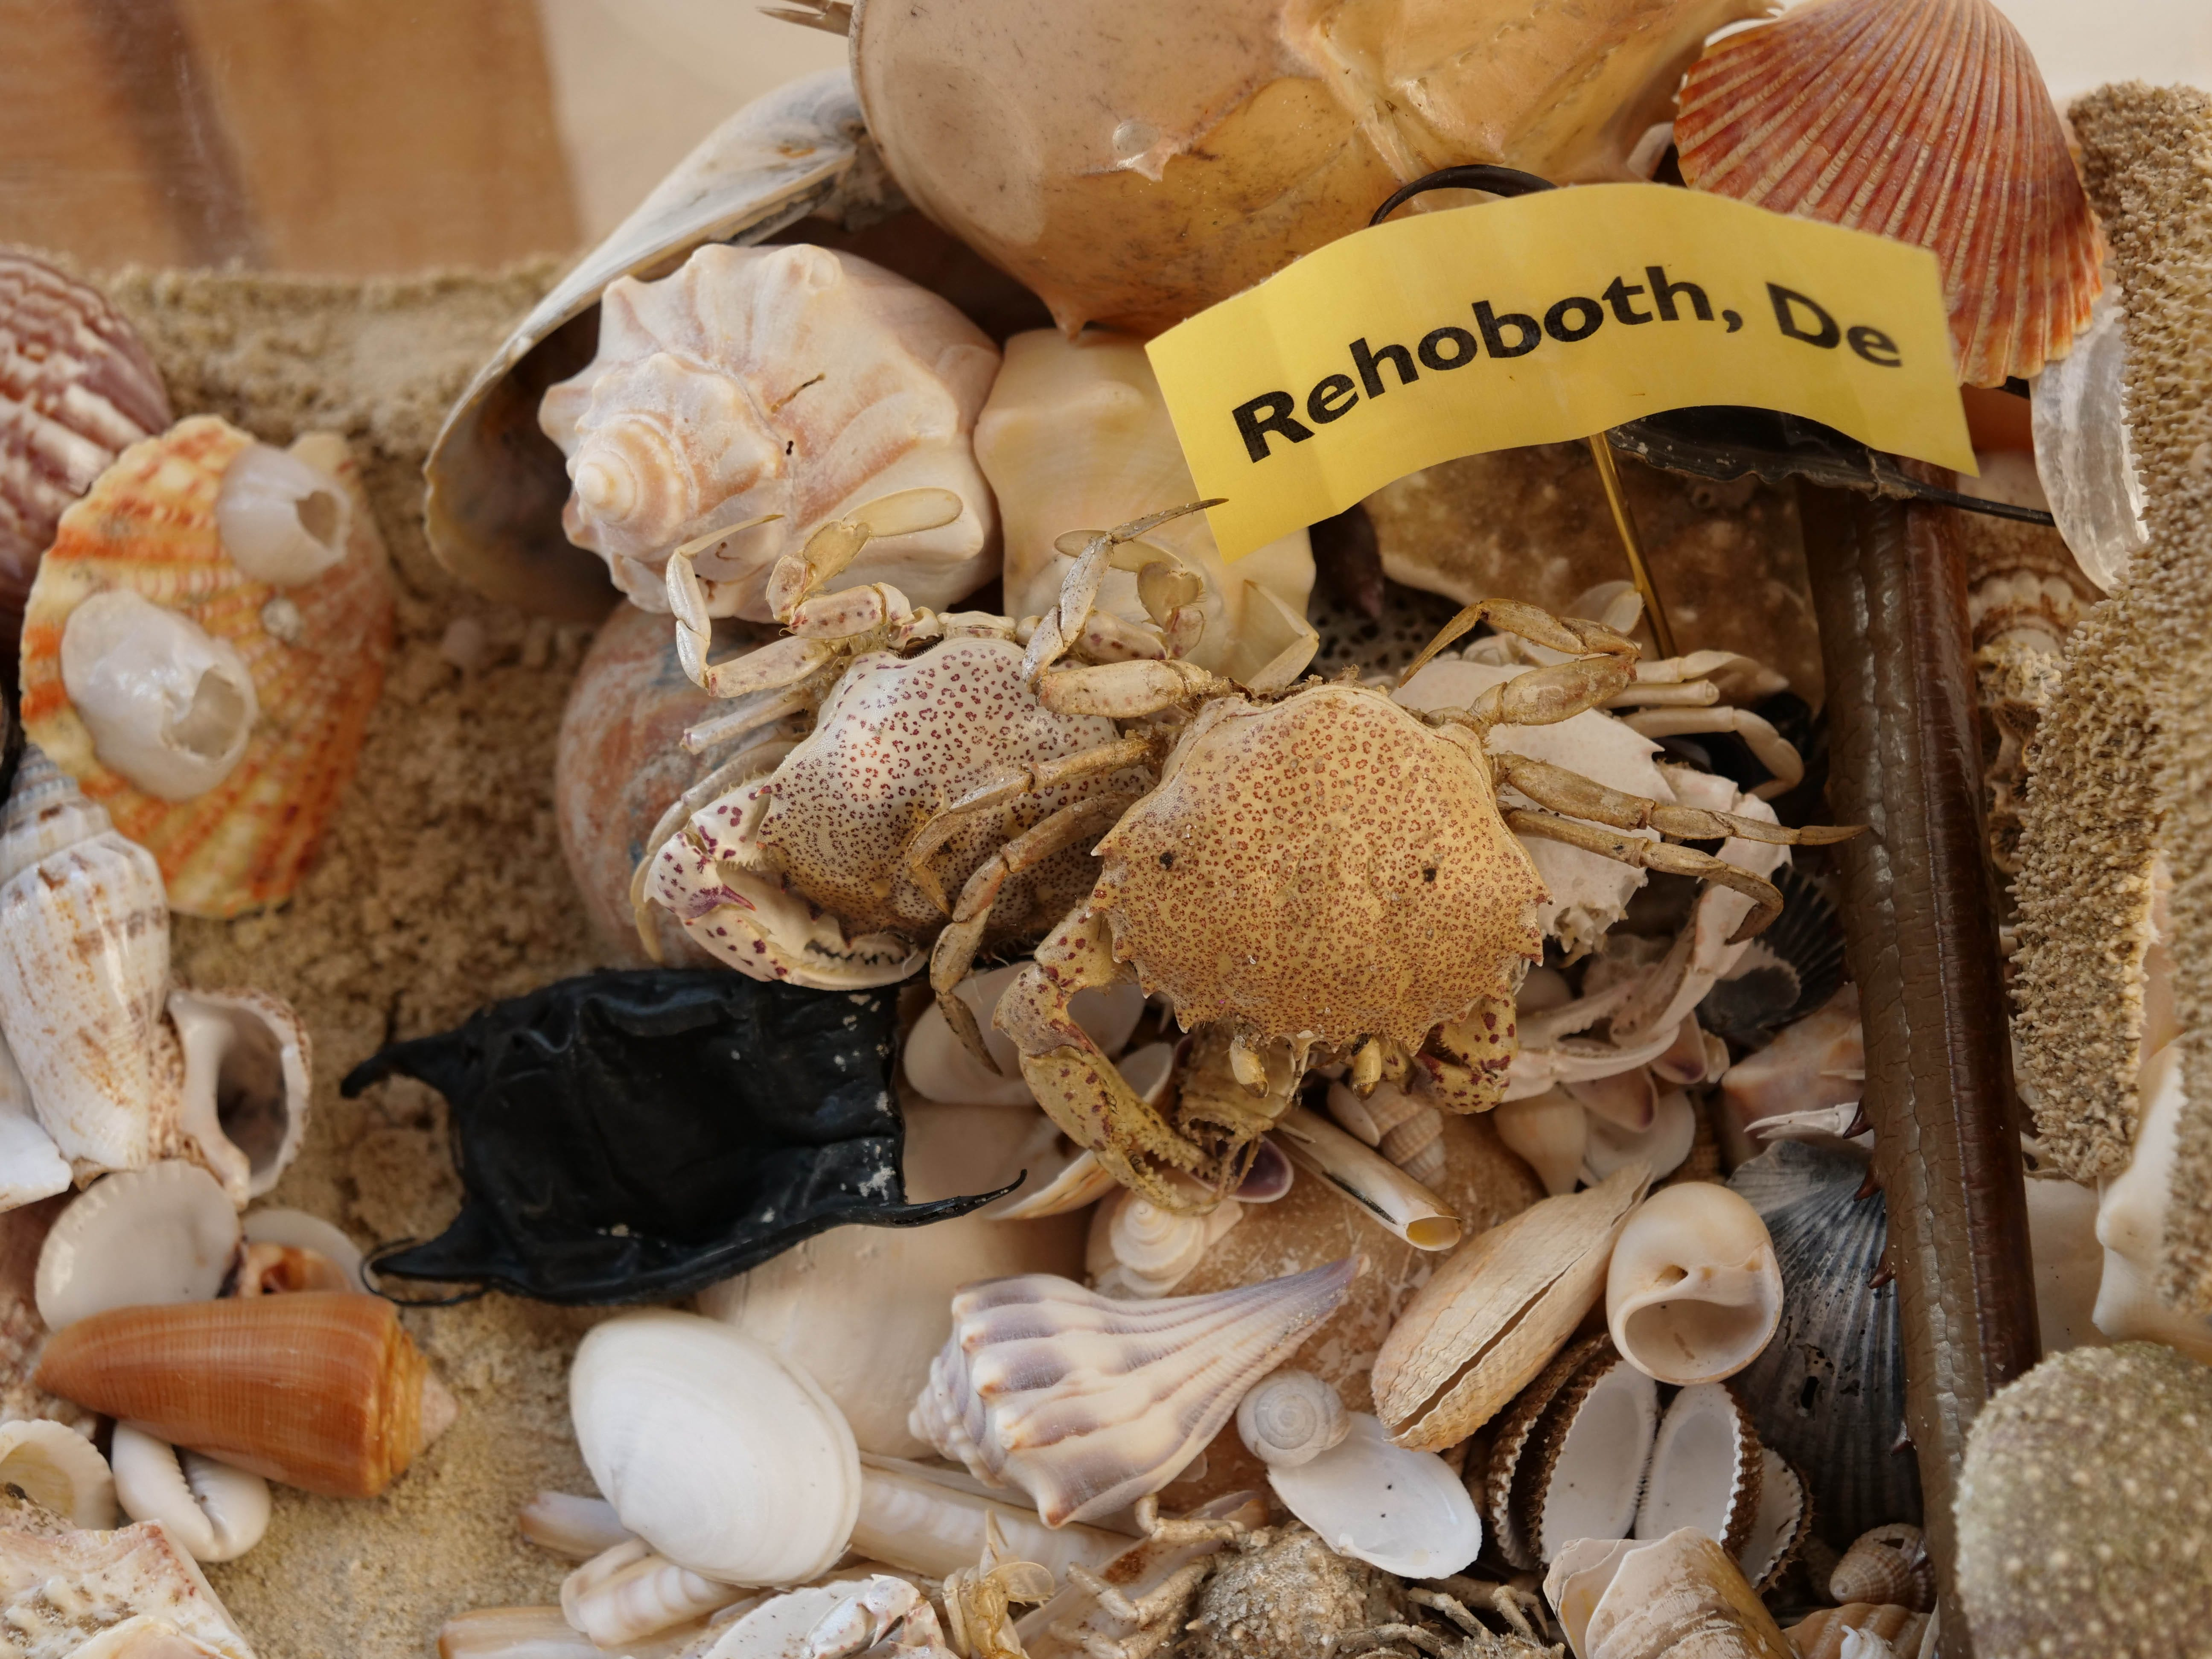 Larry Mann wouldn't have a collection without ocean relics from Rehoboth Beach, where he's had a home for over 30 years.